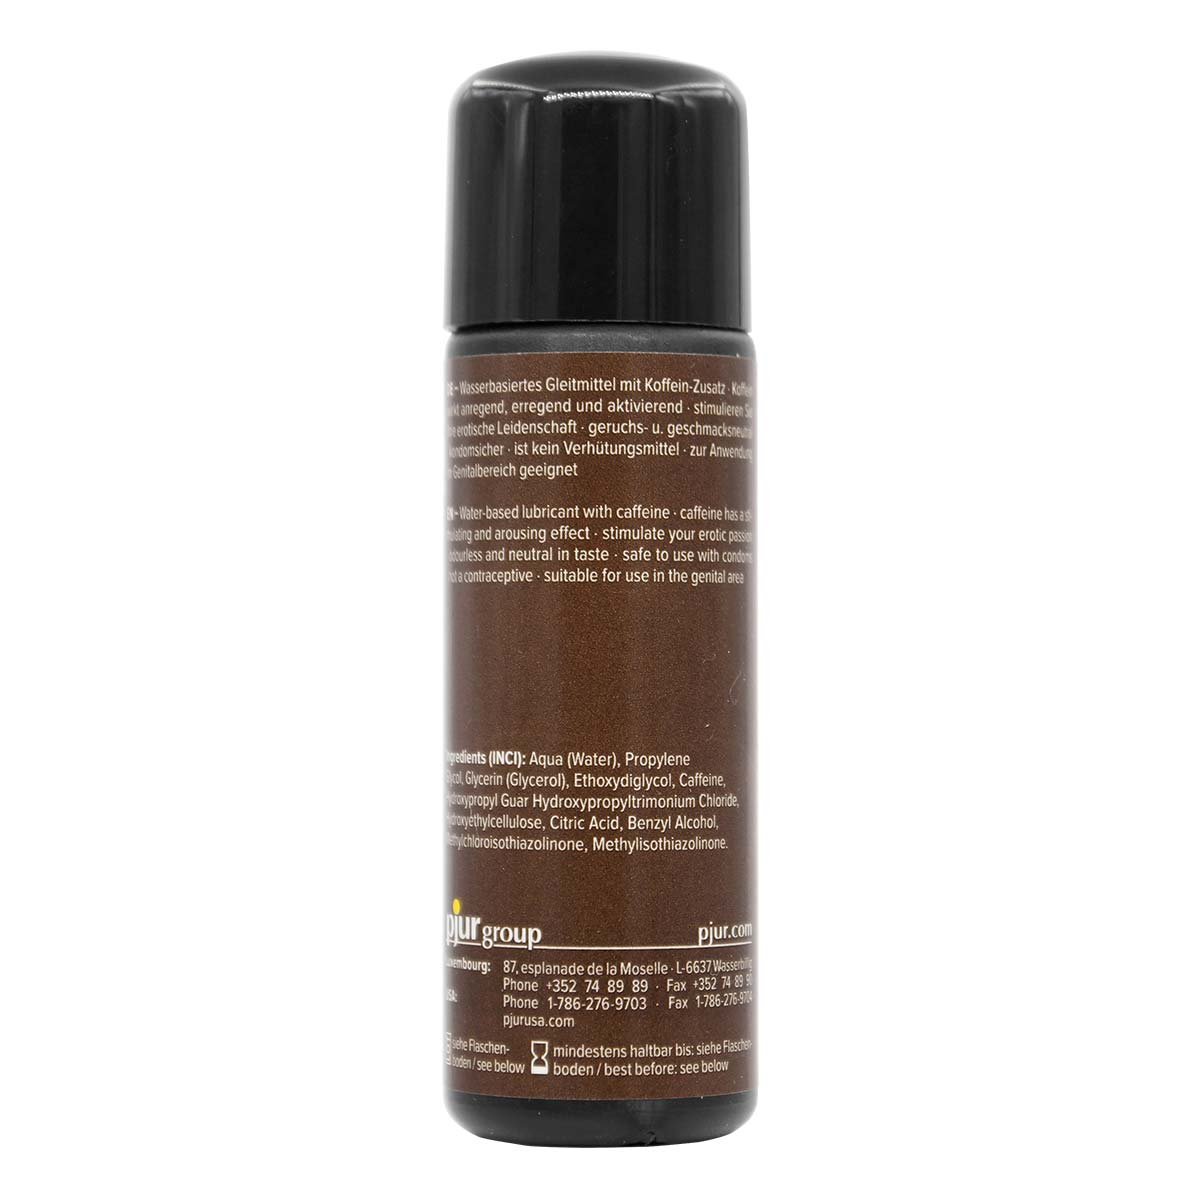 pjur espresso 30ml Water-based Lubricant